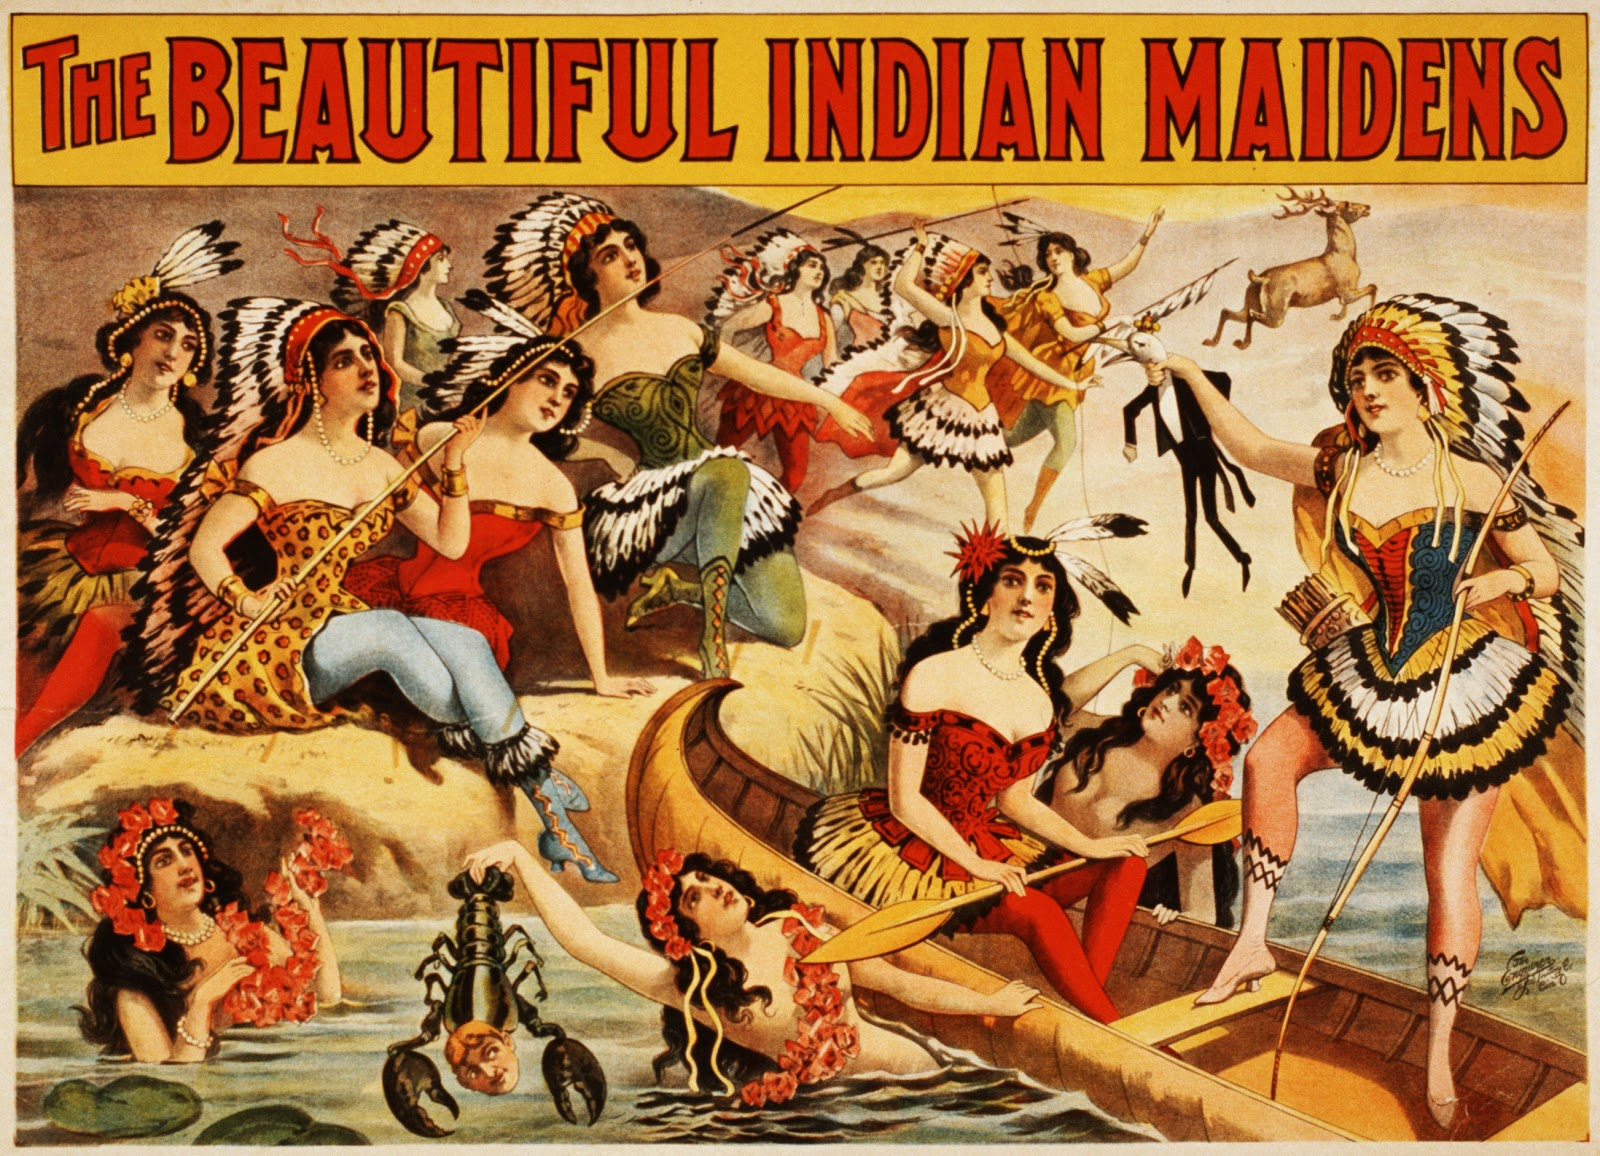 Old Ads Are Funny 1899 Ad The Beautiful Indian Maidens